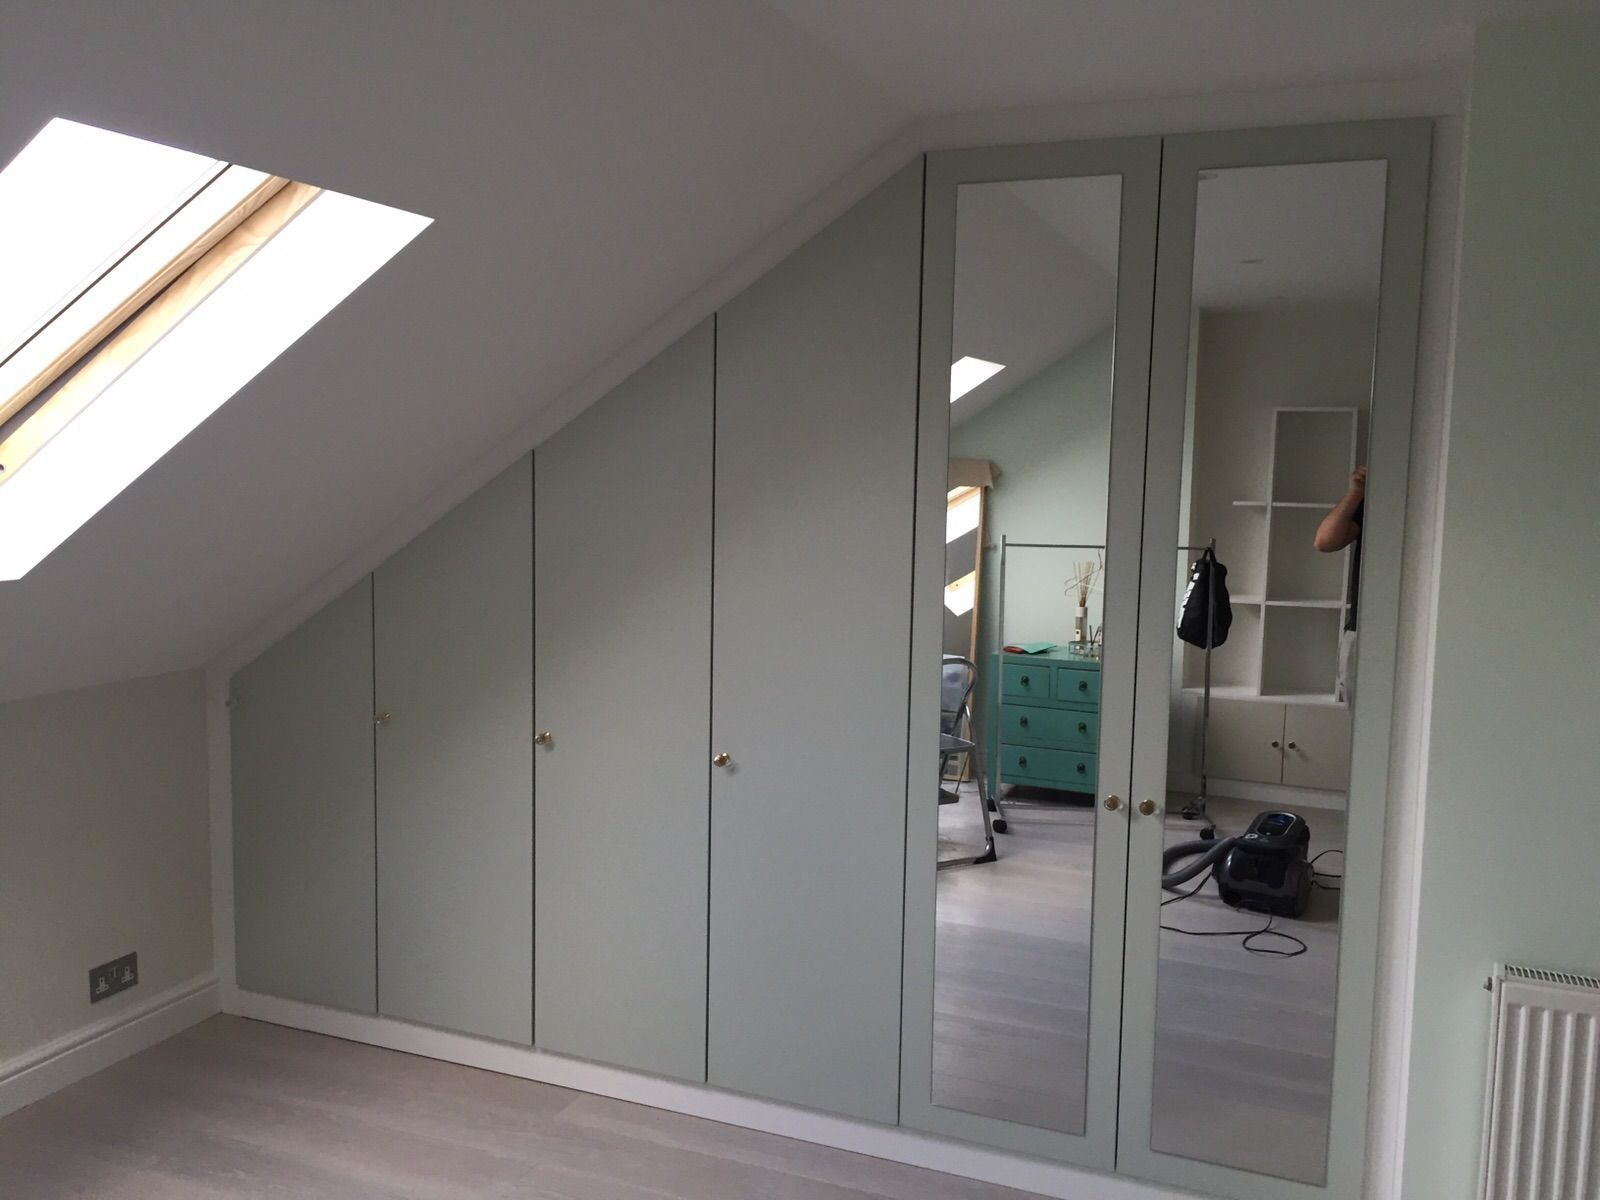 Bespoke Pistachio Fitted Wardrobe with Mirrored Doors ...